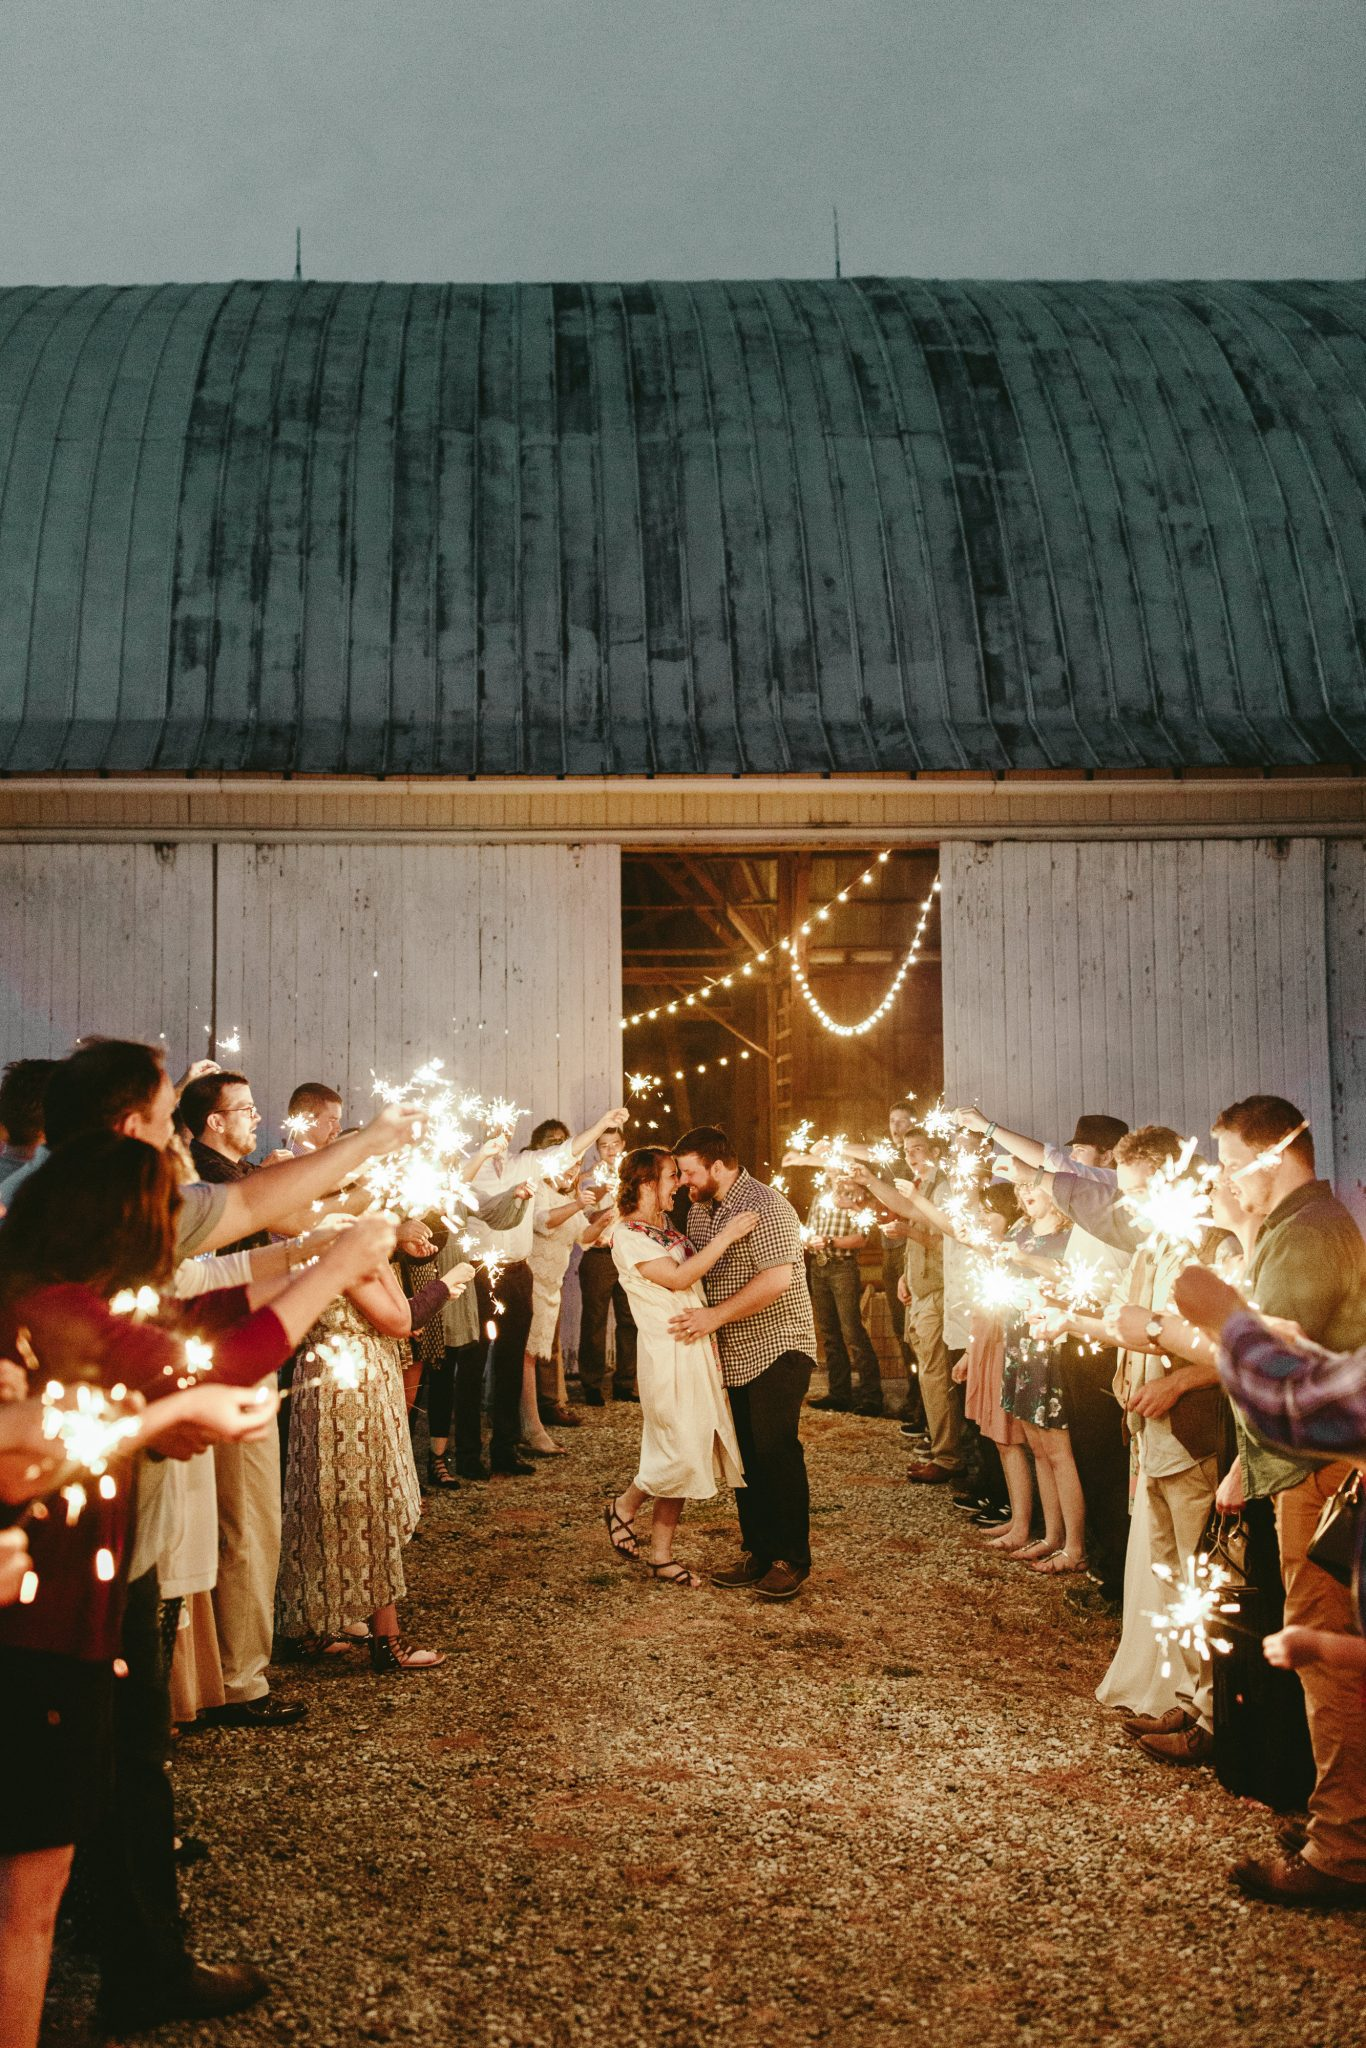 sparkler exit photos, barn sparkler exit, string lit barn reception, unique wedding exit photos, later send off wedding exit, barn wedding, outdoor wedding reception, philadelphia documentary wedding photographer,brooklyn wedding photography, Brooklyn wedding, Philadelphia wedding photographer, Philadelphia wedding, Brooklyn new york photographer, unique wedding inspiration, fun wedding photos, romantic wedding, destination wedding photographer, wedding photography inspiration,barn wedding ideas, barn wedding, unique barn wedding inspiration